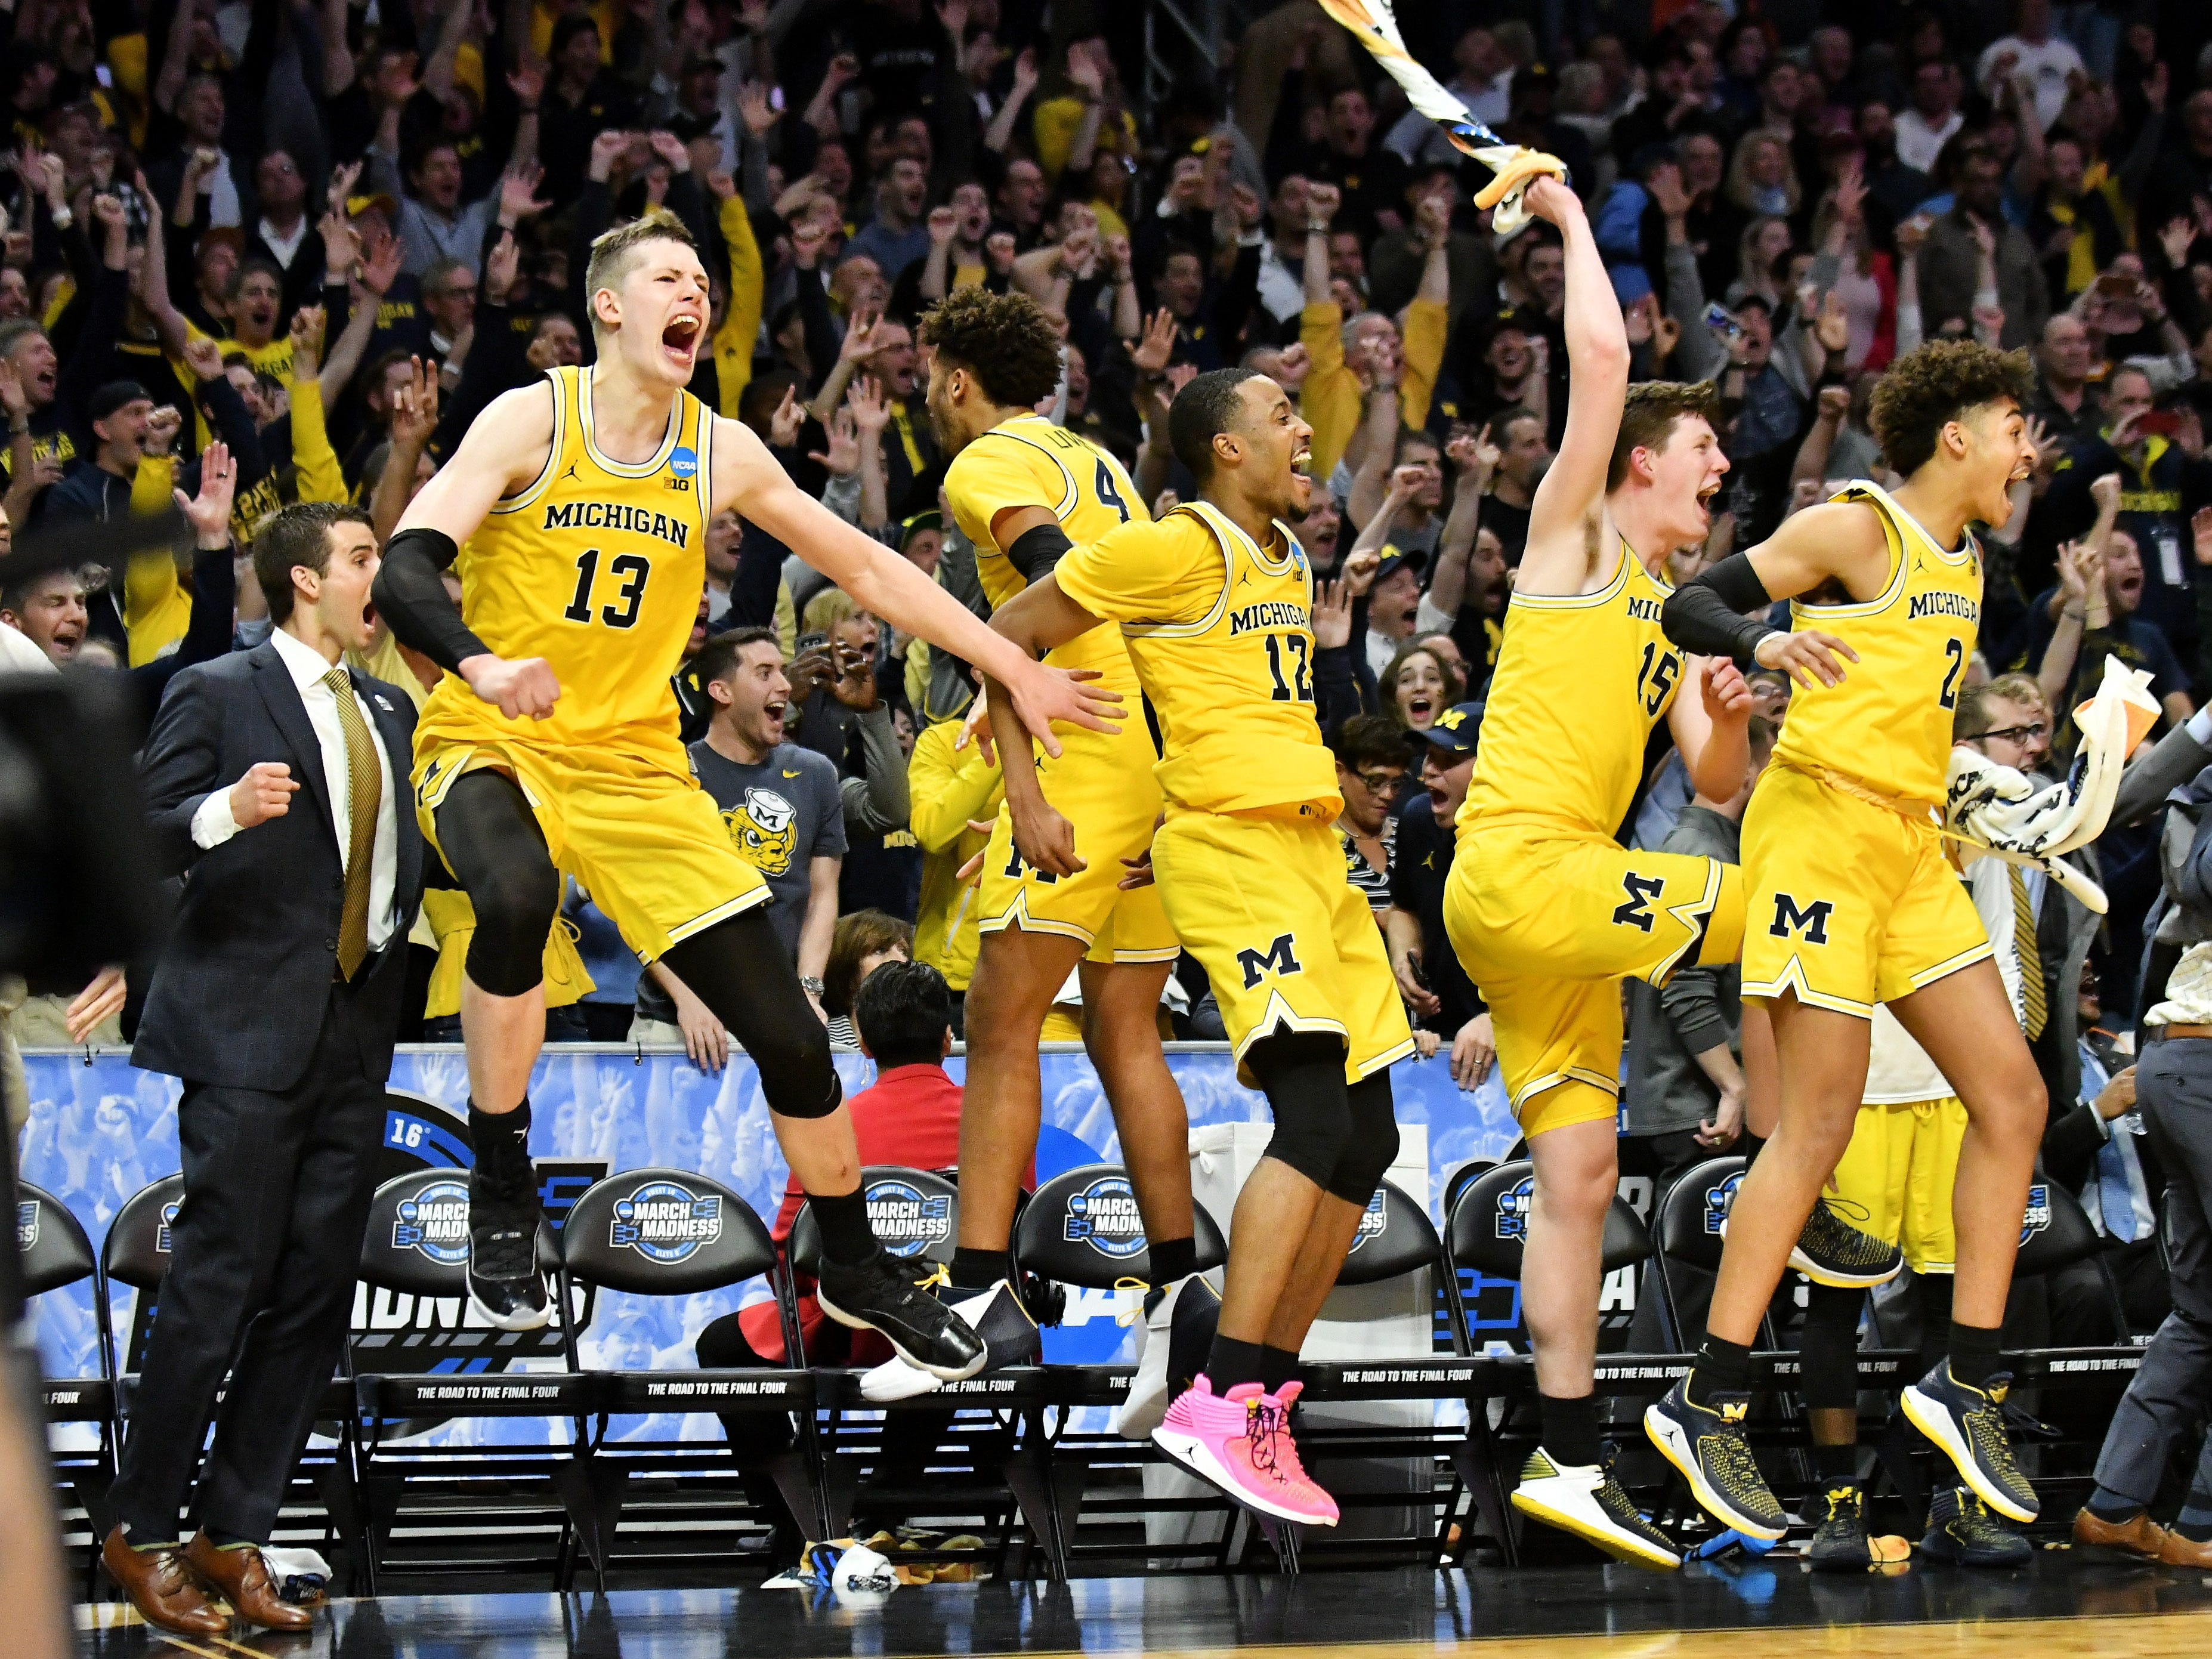 Players on the Michigan bench react after Michigan forward C.J. Baird hit a three-point shot late in a dominant 99-72 victory in the NCAA Sweet Sixteen game at the Staples Center in Los Angeles, Calif. on March 22, 2018. Michigan improbable tournament run ended in a lopsided loss to Villanova in the NCAA championship game.